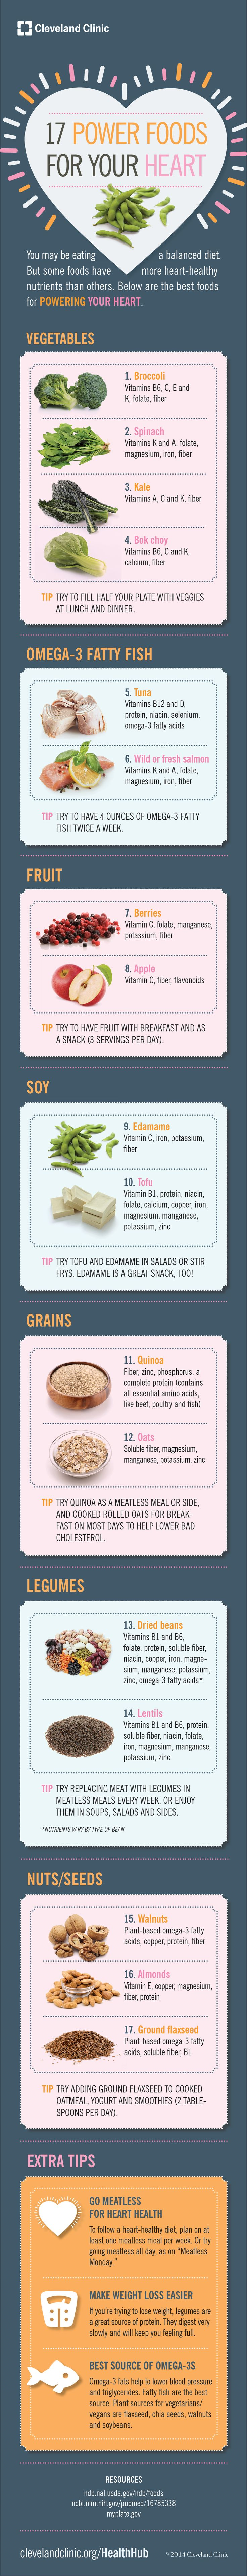 Energize your heart with these 17 power foods. Infographic on HealthHub from Cleveland Clinic.